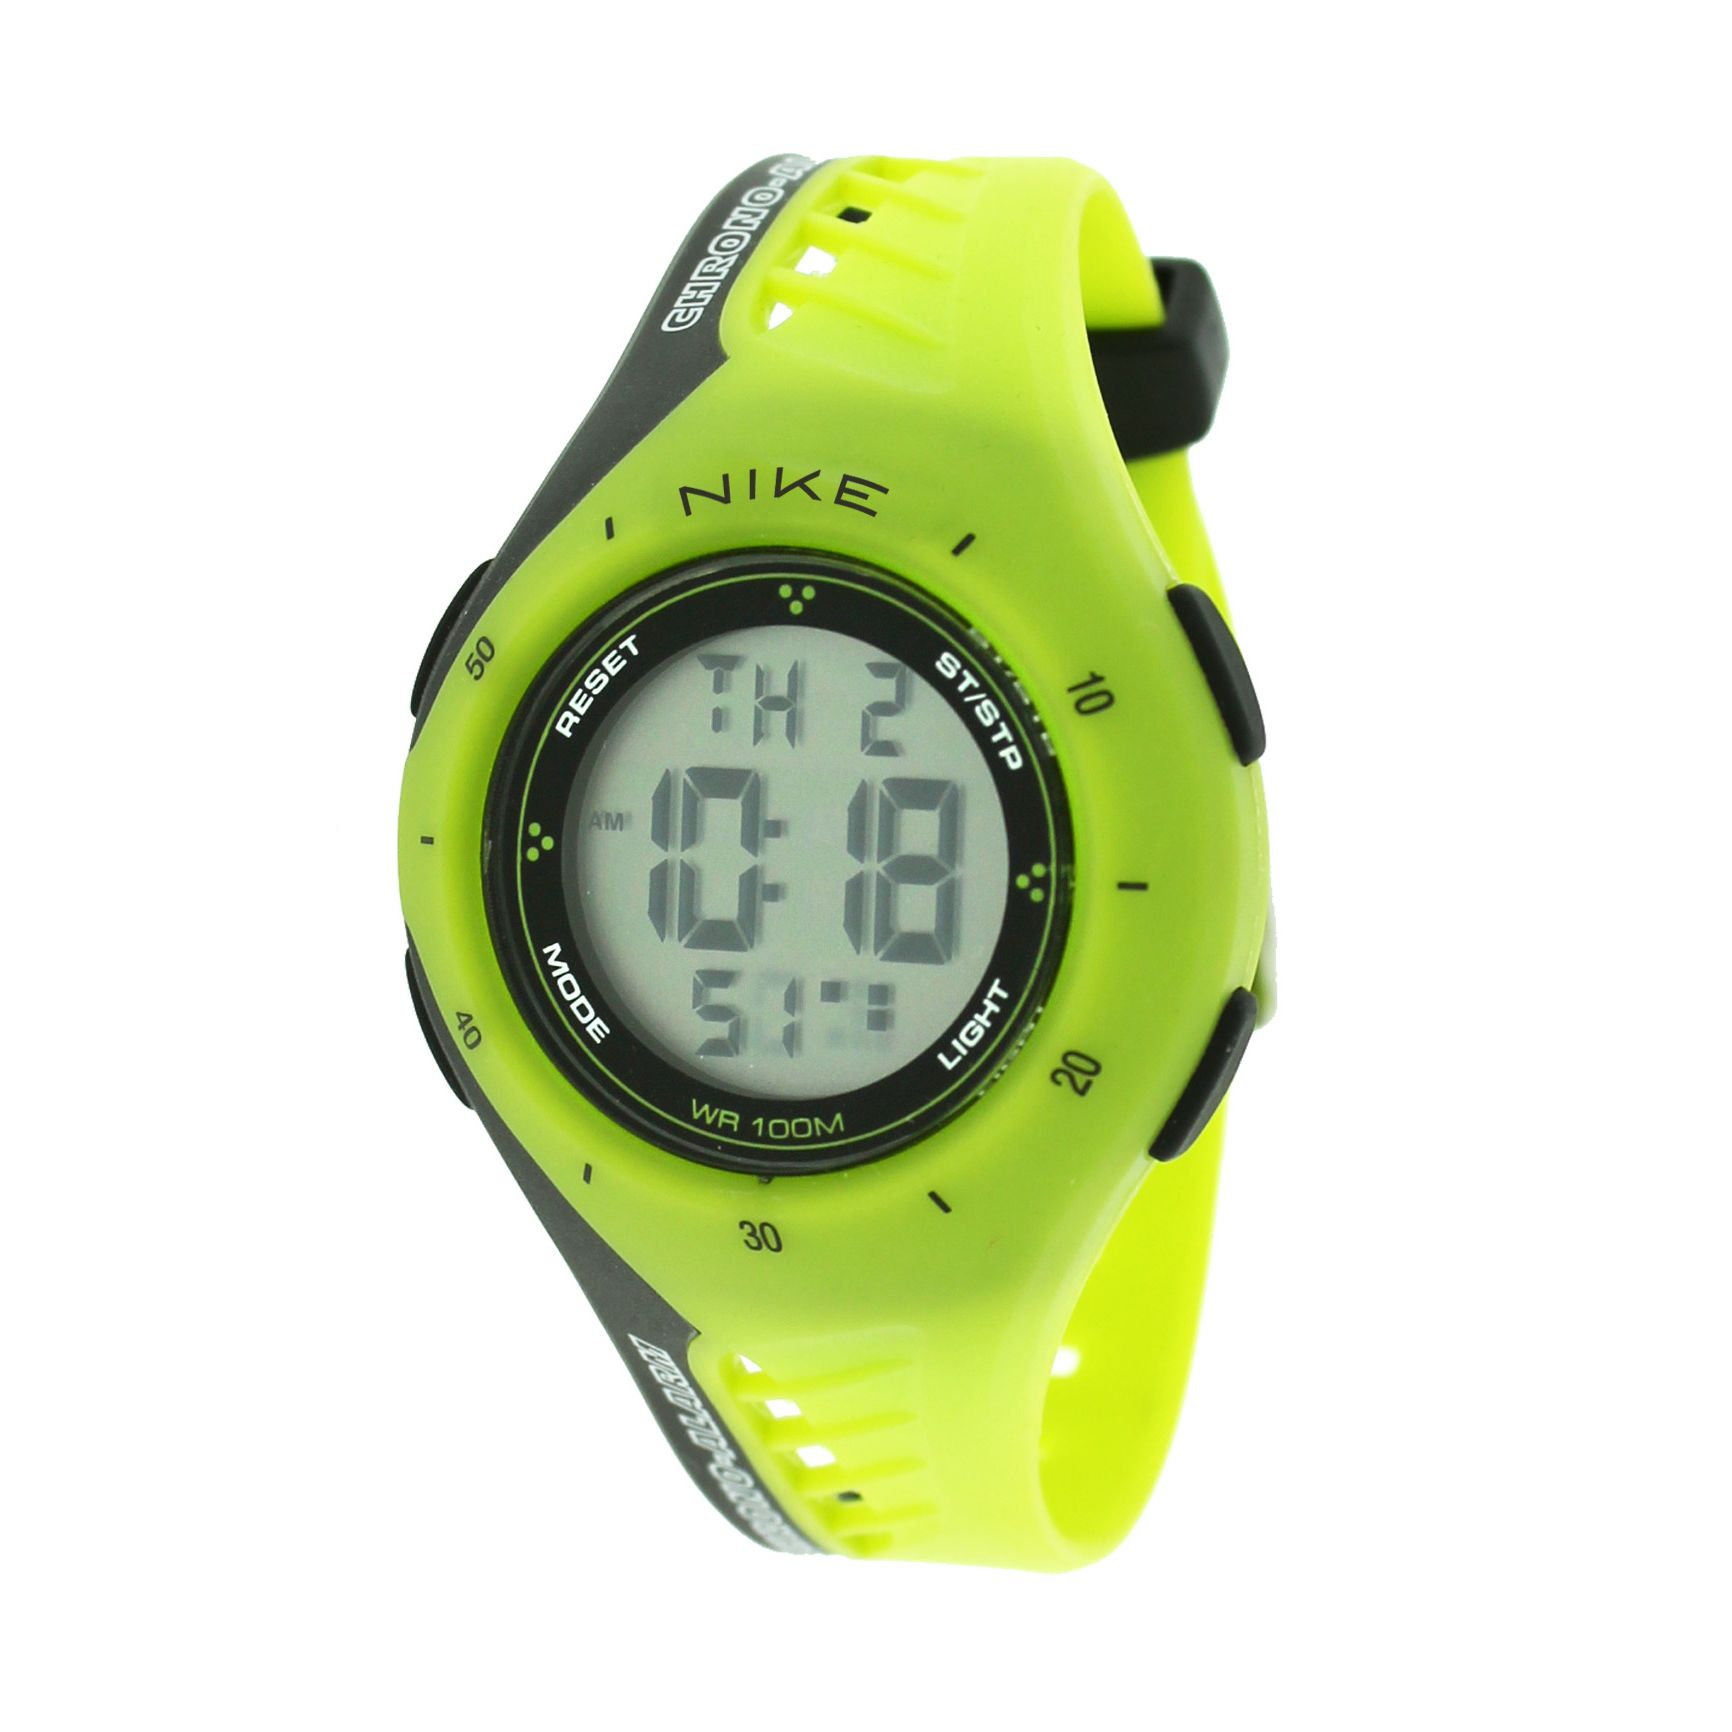 Orologio unisex Nike Sport Watches OR 560